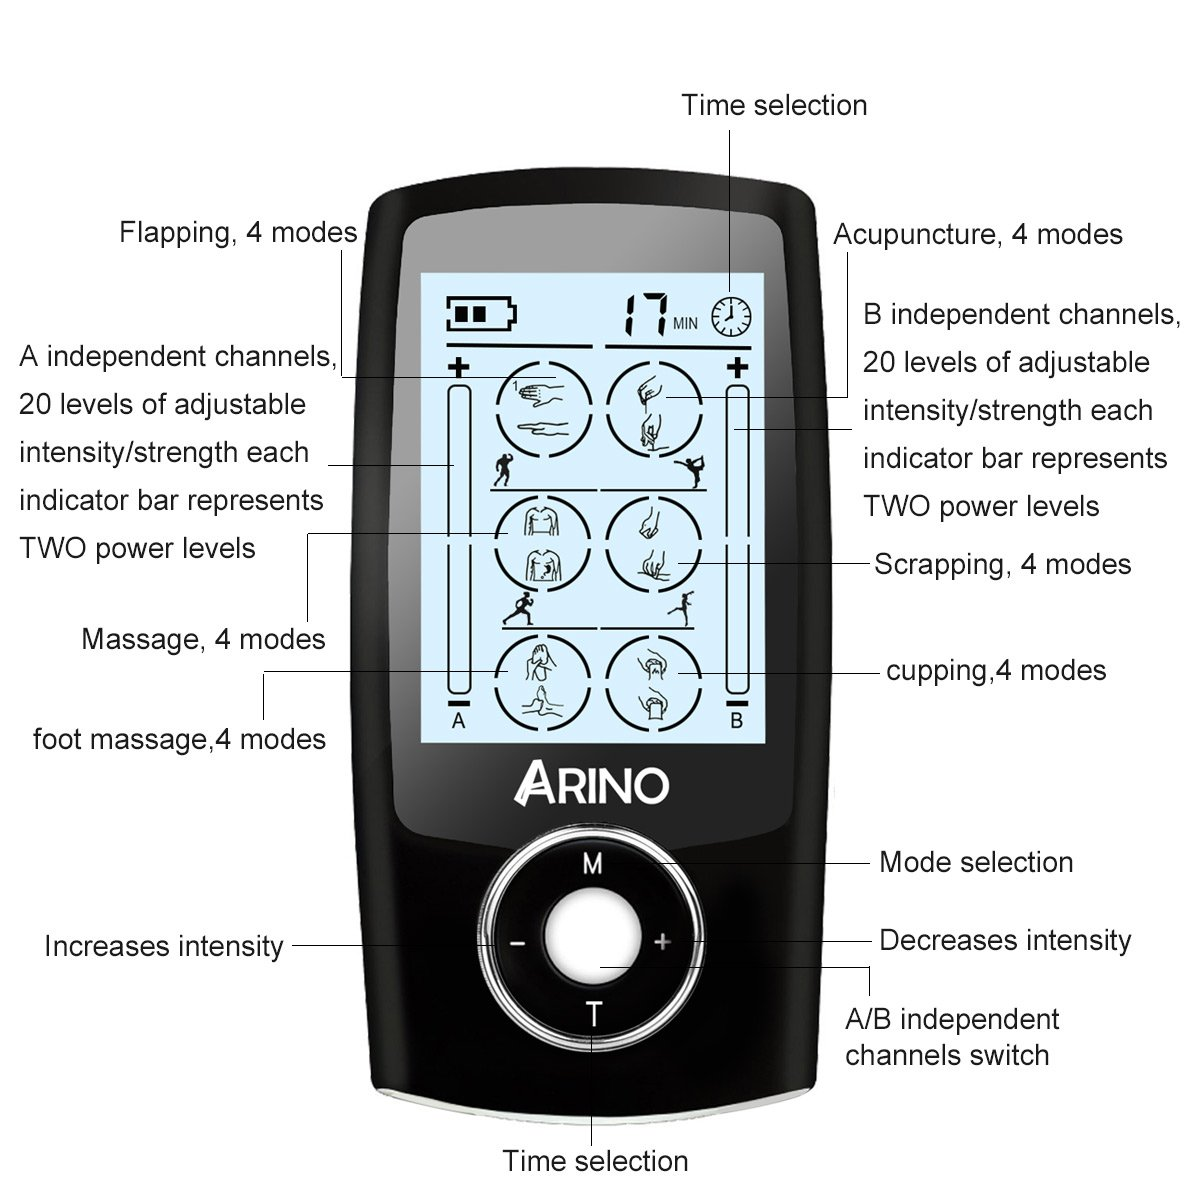 Tens Unit AB Channels 24 Modes with 8 Tens Pads, ARINO Professional Tens Device Electric Tens Machine for Pain Relief Rechargeable Portable Digital Reusable FDA Cleared